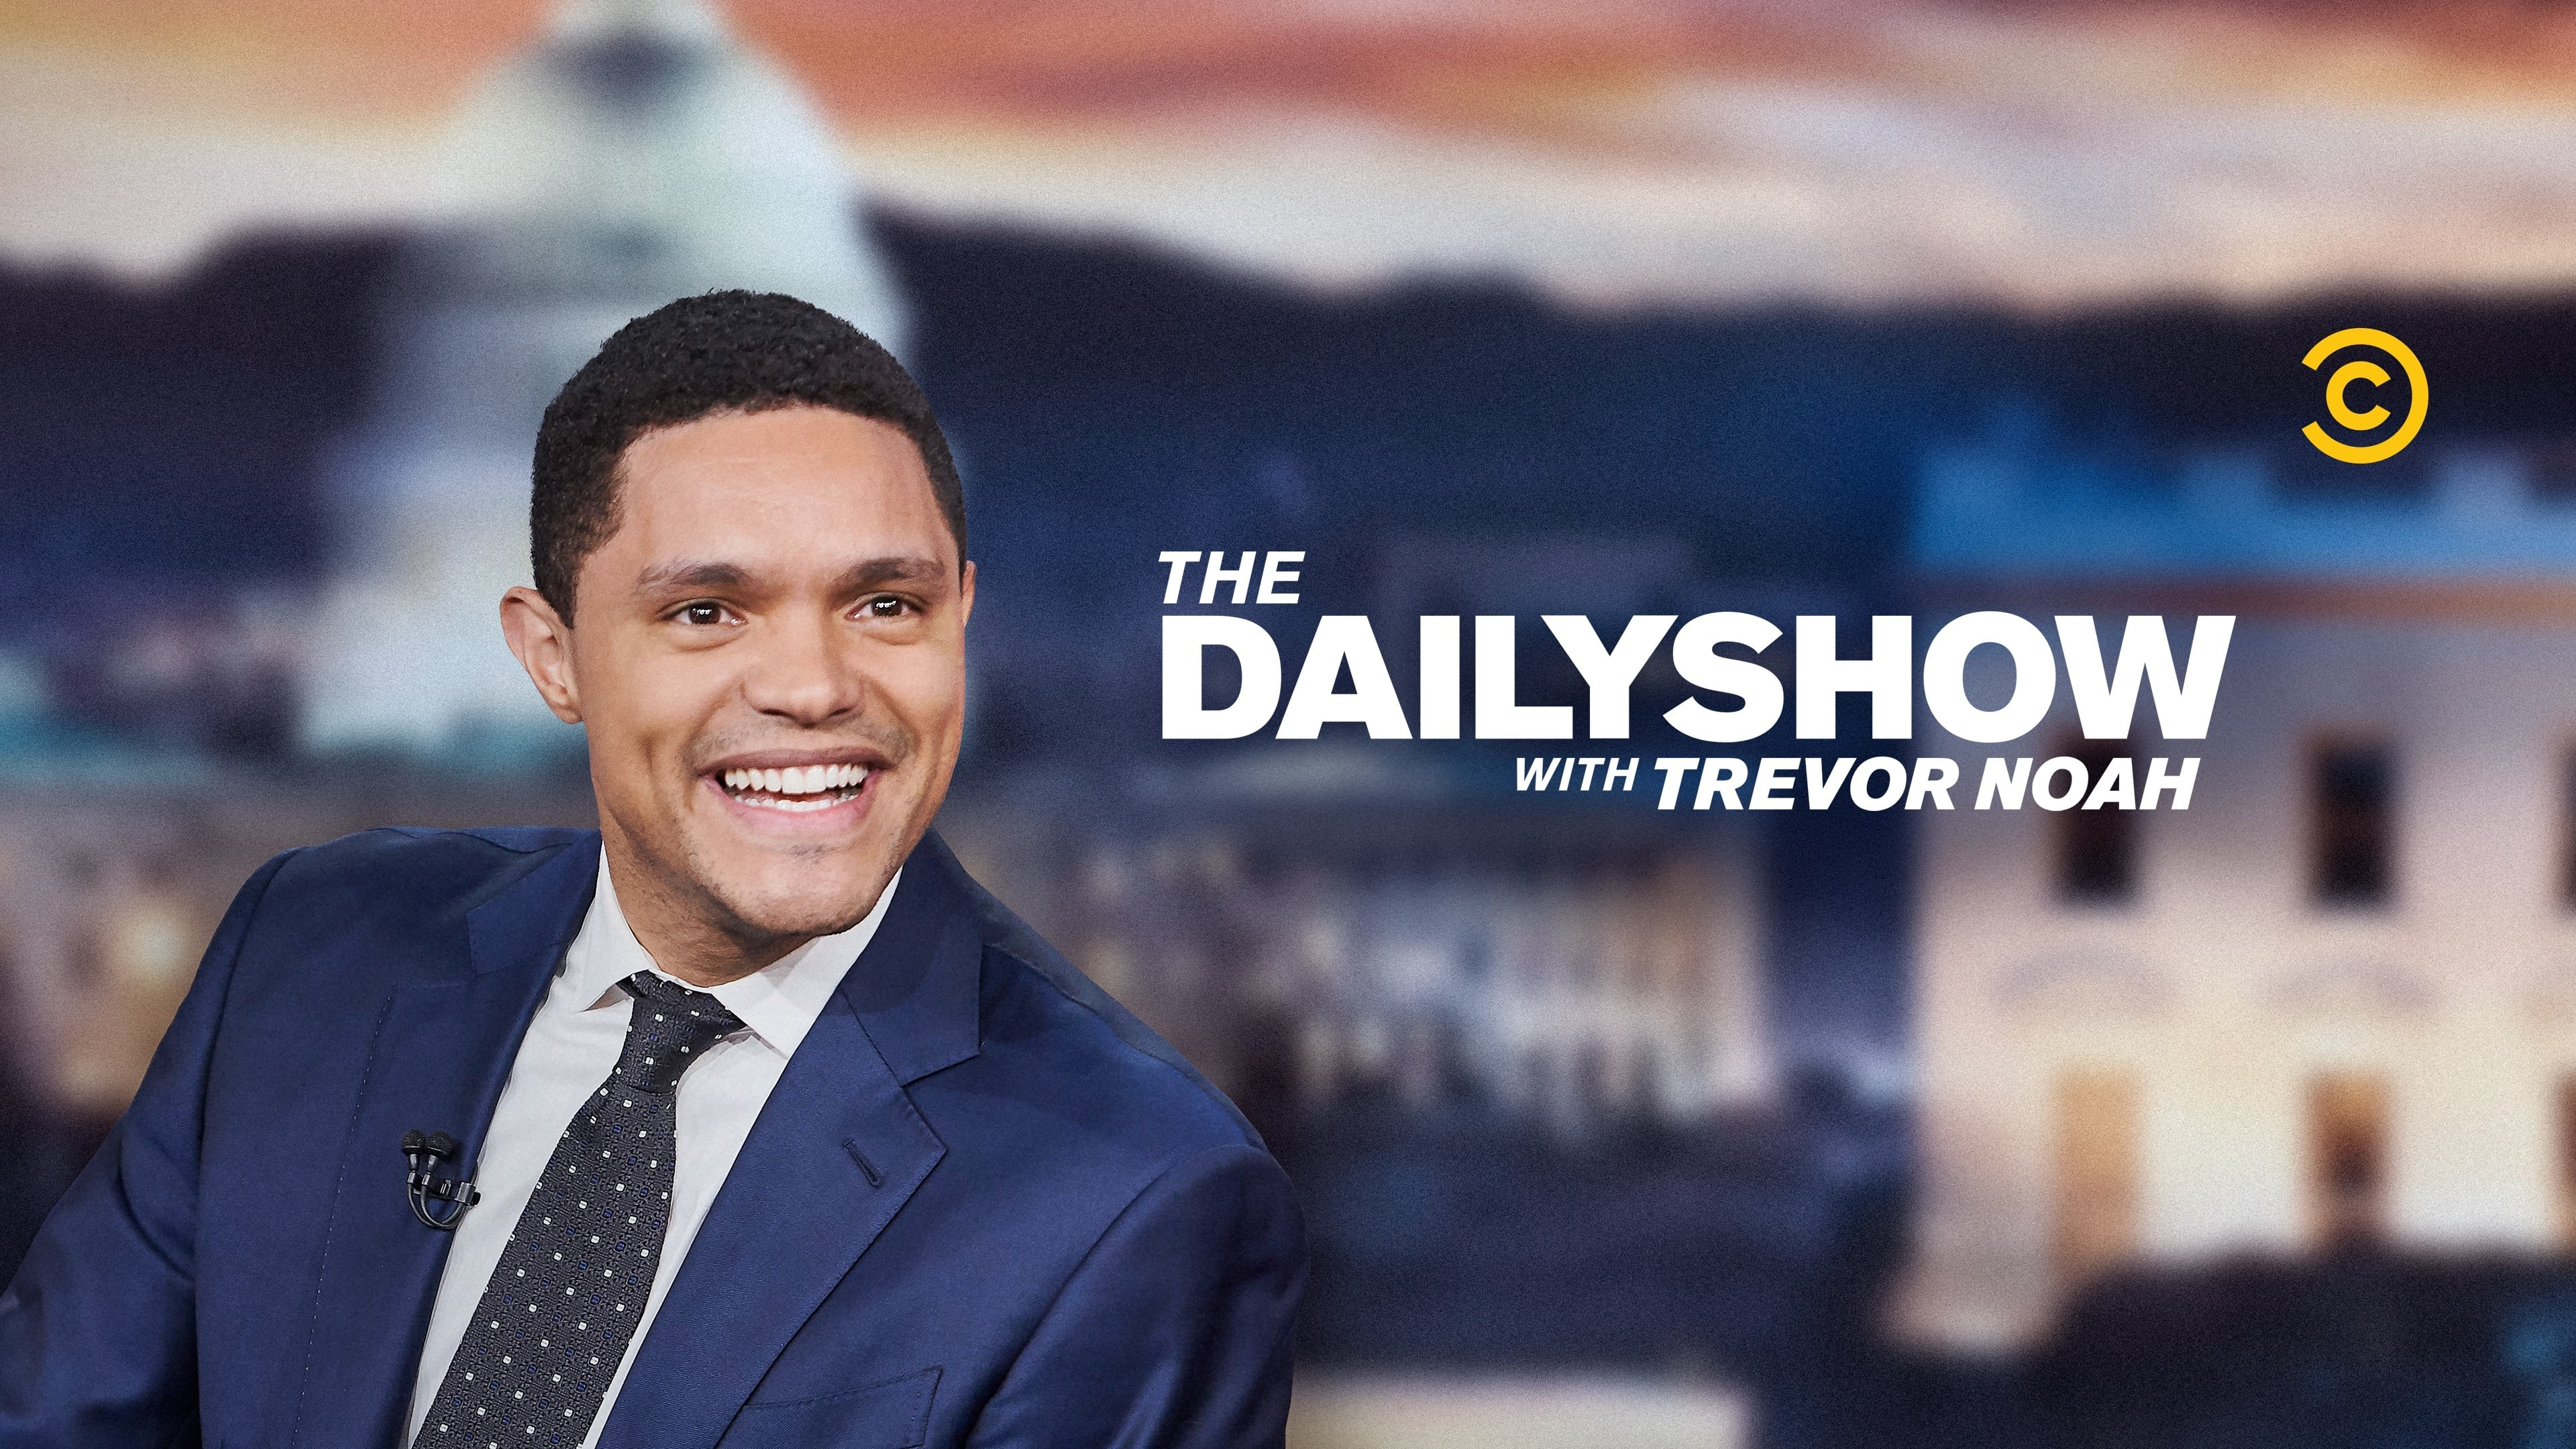 The Daily Show with Trevor Noah - Season 22